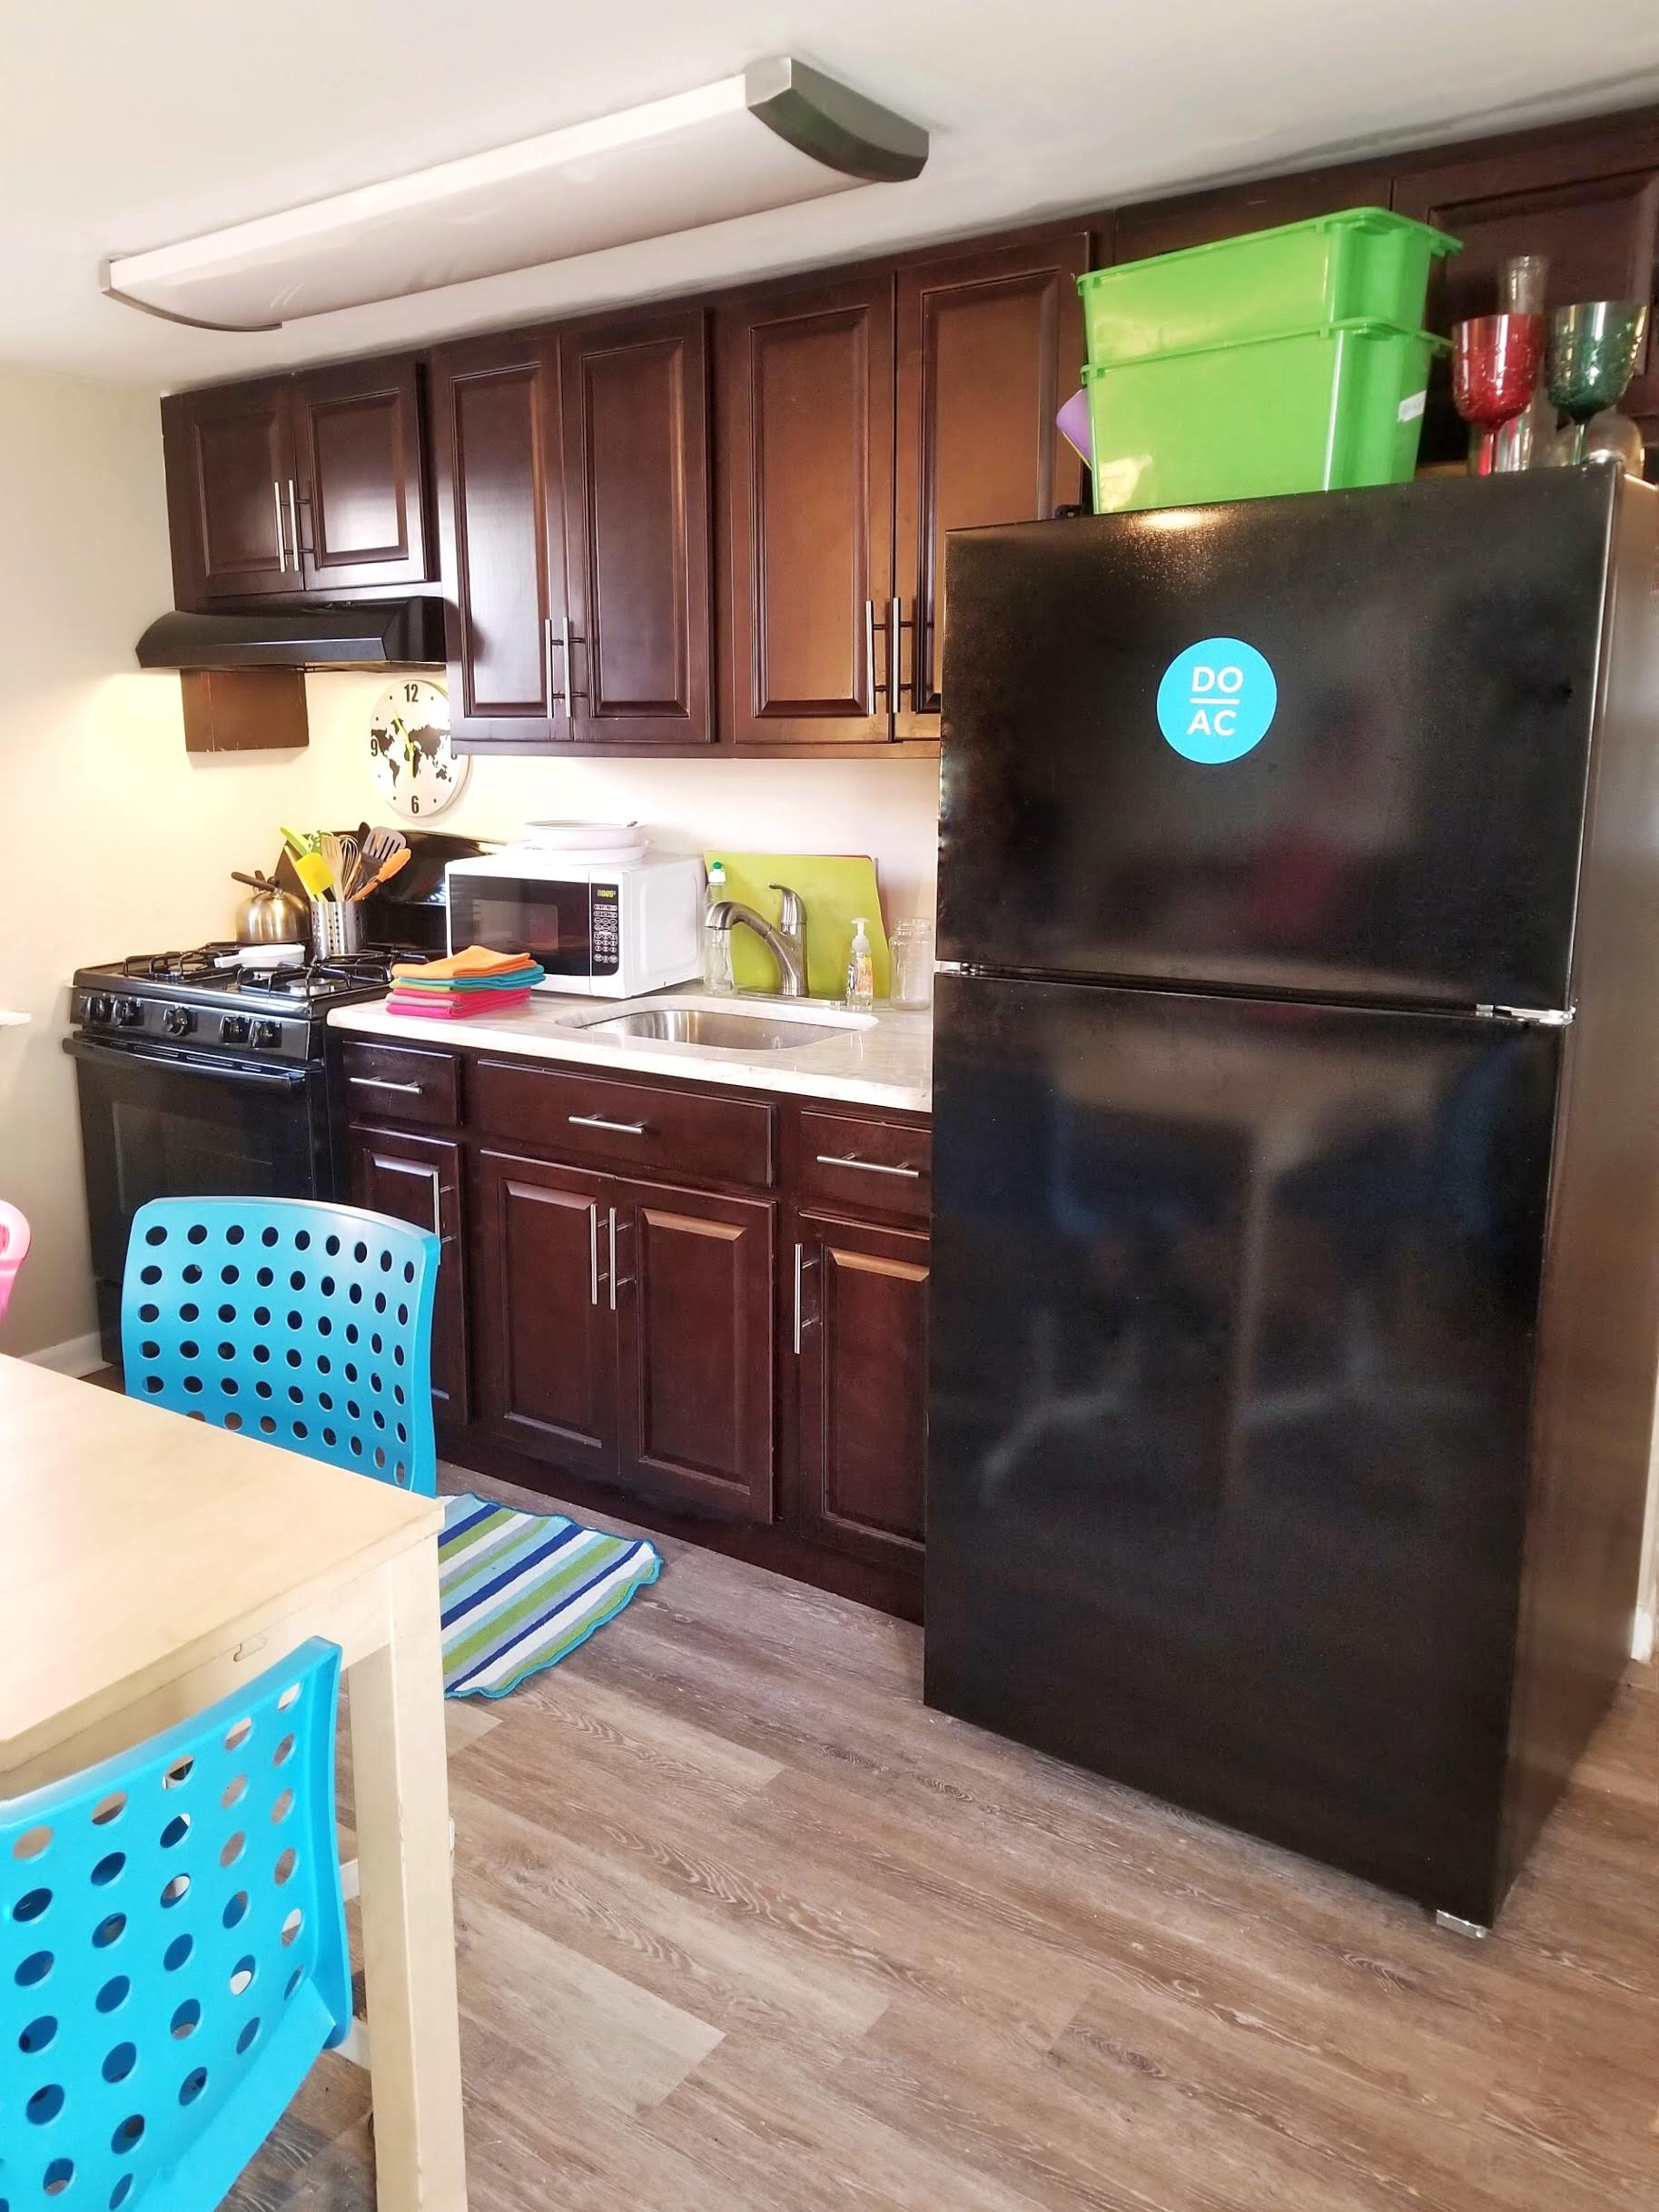 Fully furnished kitchen to reheat snacks after a long at the beach at City House Atlantic City